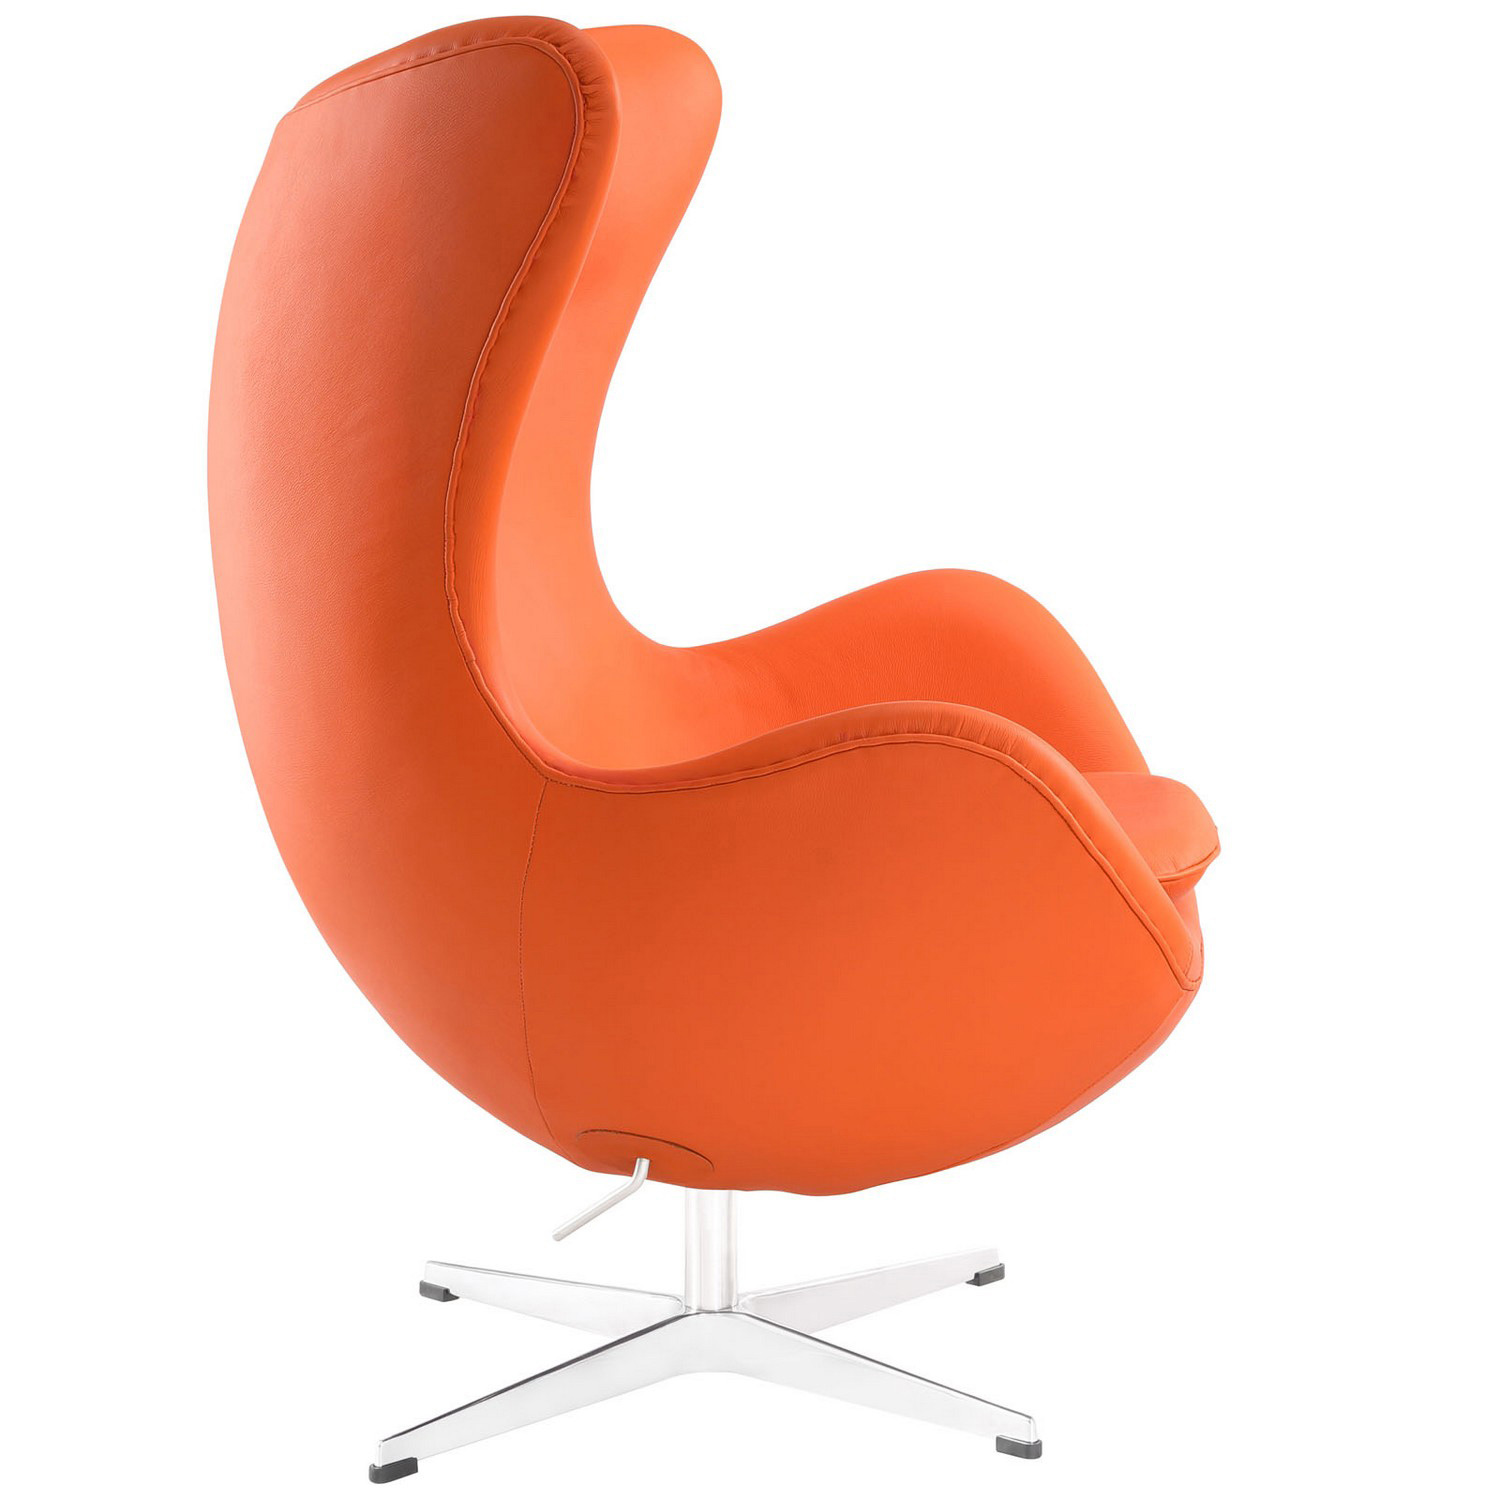 Modway Glove Leather Lounge Chair - Orange